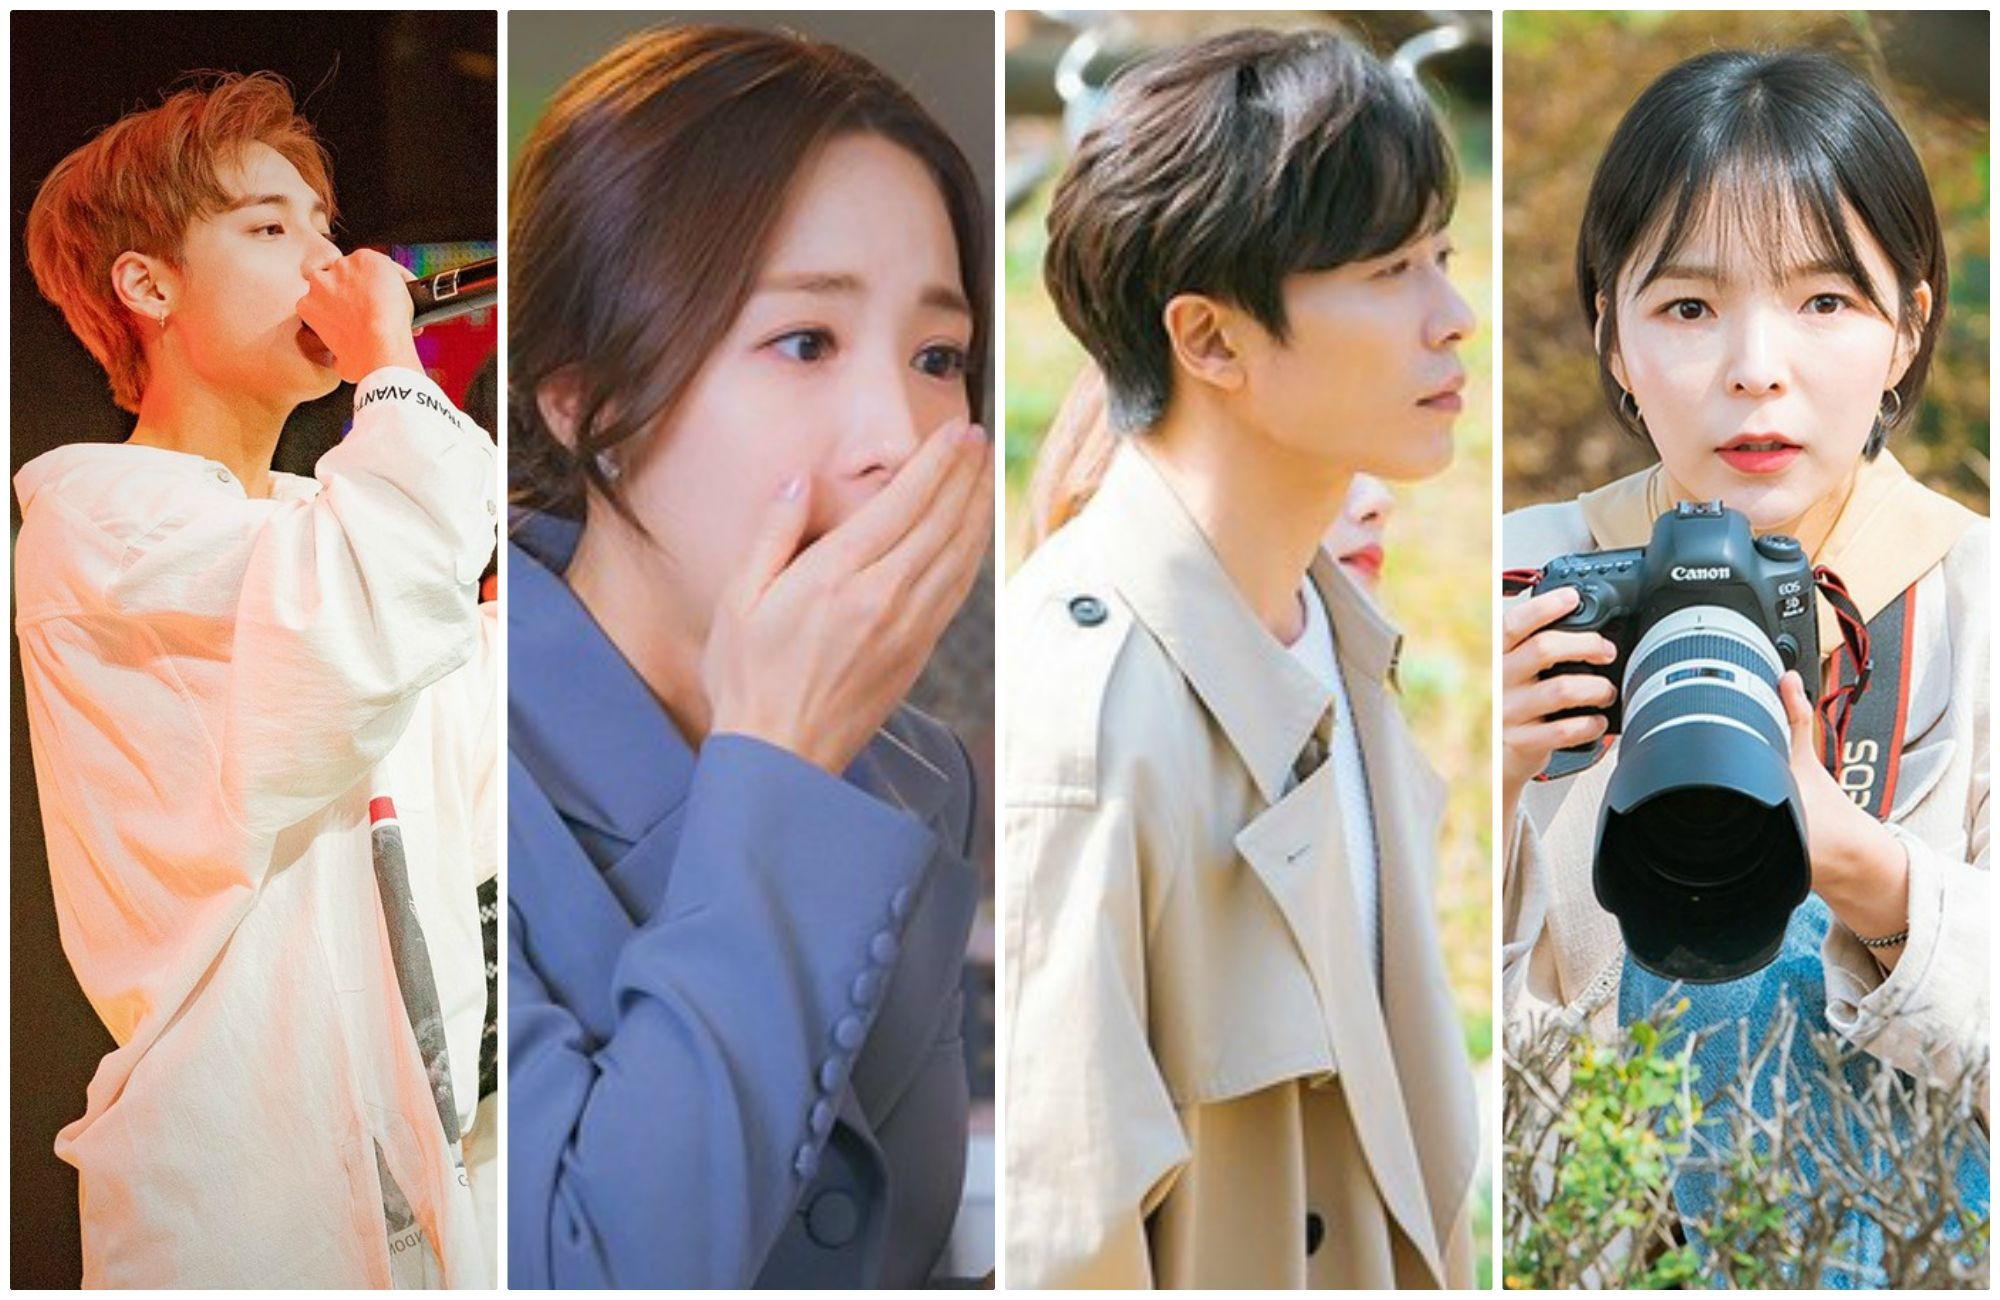 tvN has updated new photos of Kim Jae Wook, Park Min Young, ONE and Park Jin Joo in 'Her Private Life'